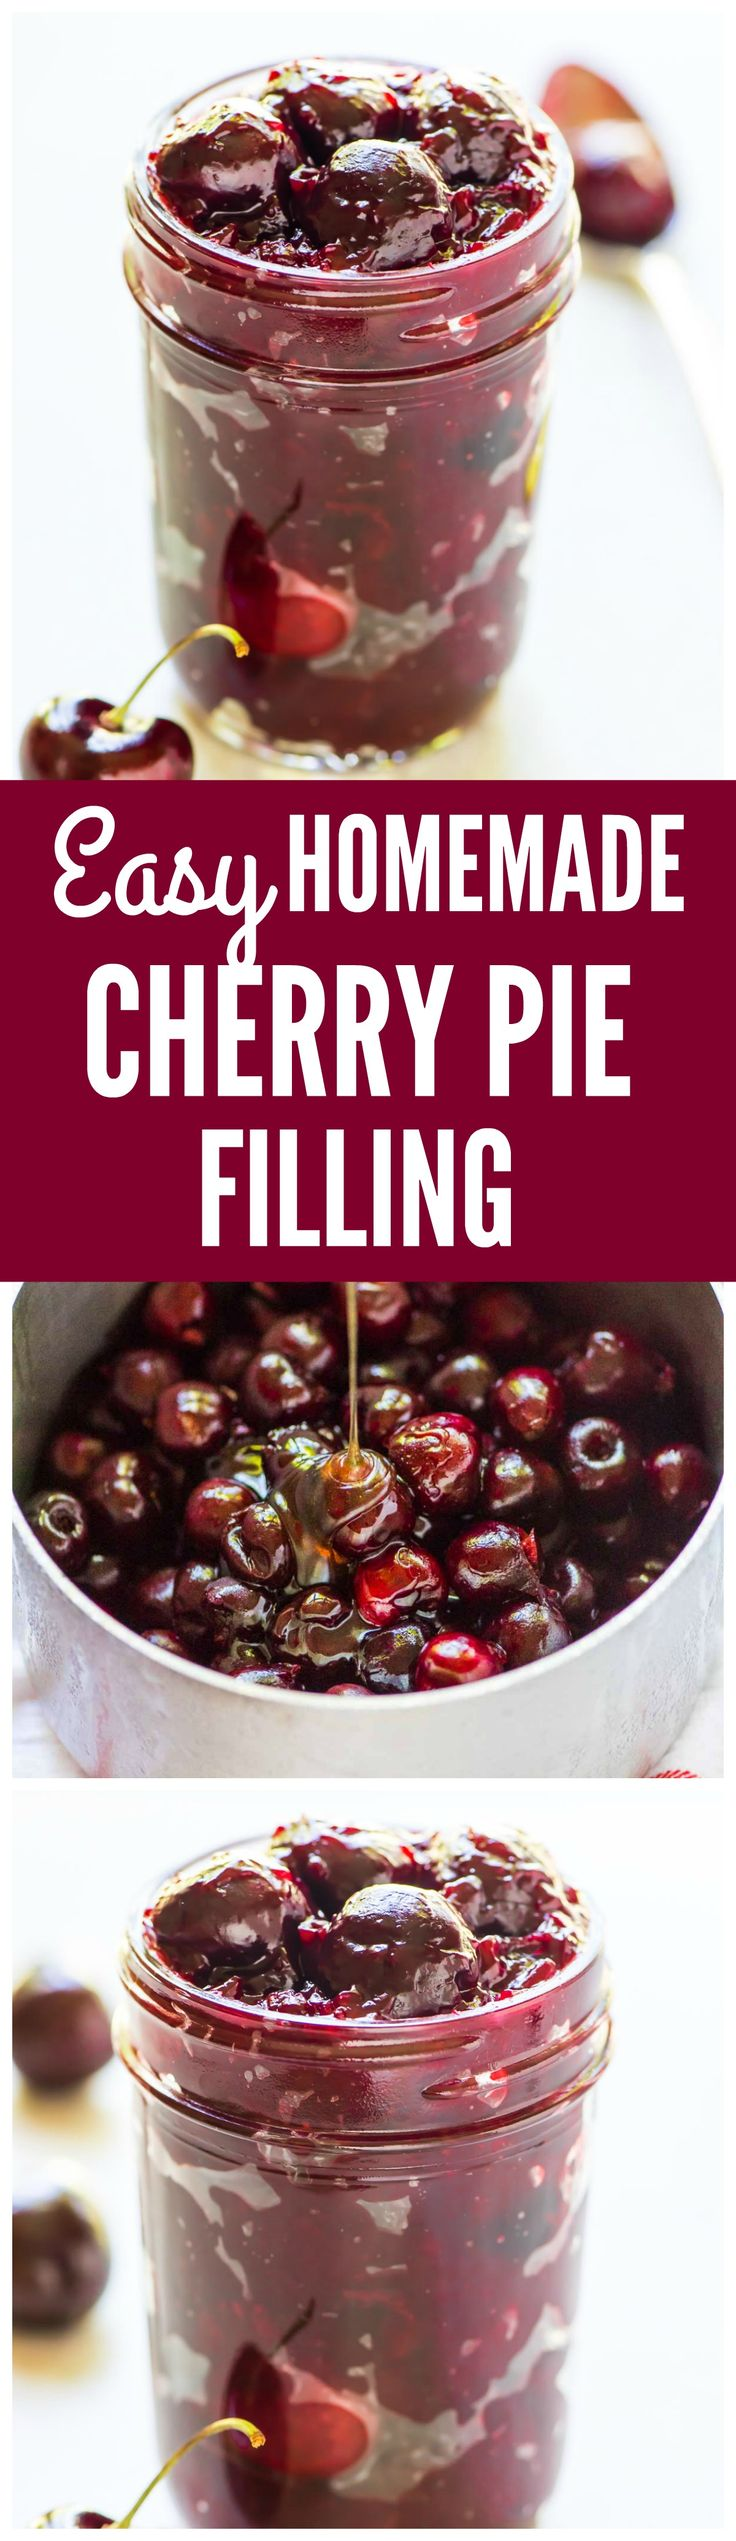 Ditch the canned filling and make your own homemade cherry pie filling from scratch! This EASY recipe will have you eating straight from the jar! Simple ingredients and naturally sweetened with honey. Recipe at wellplated.com @wellplated